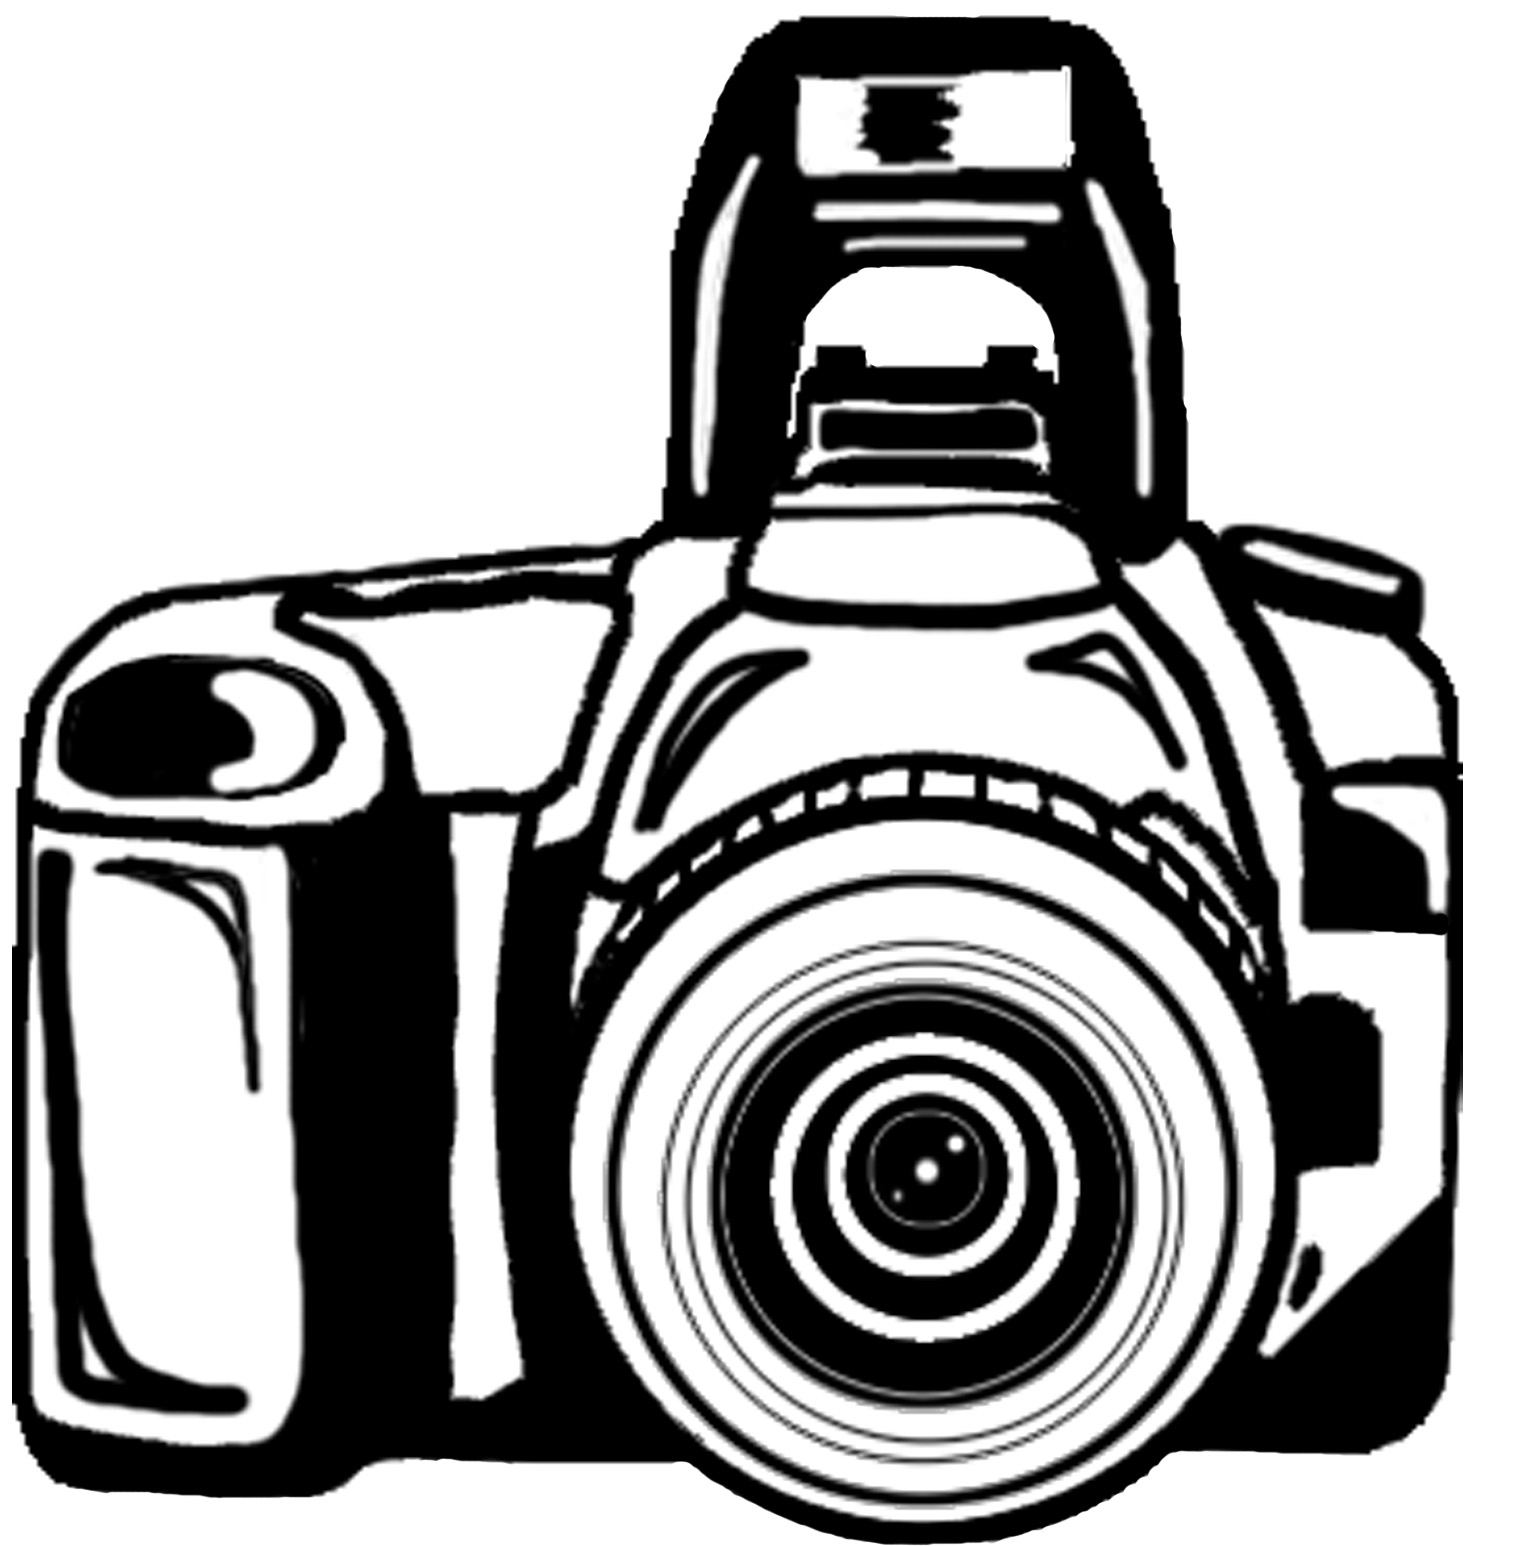 Nikon camera clipart hd graphic free download Free Free Camera Clipart, Download Free Clip Art, Free Clip Art on ... graphic free download